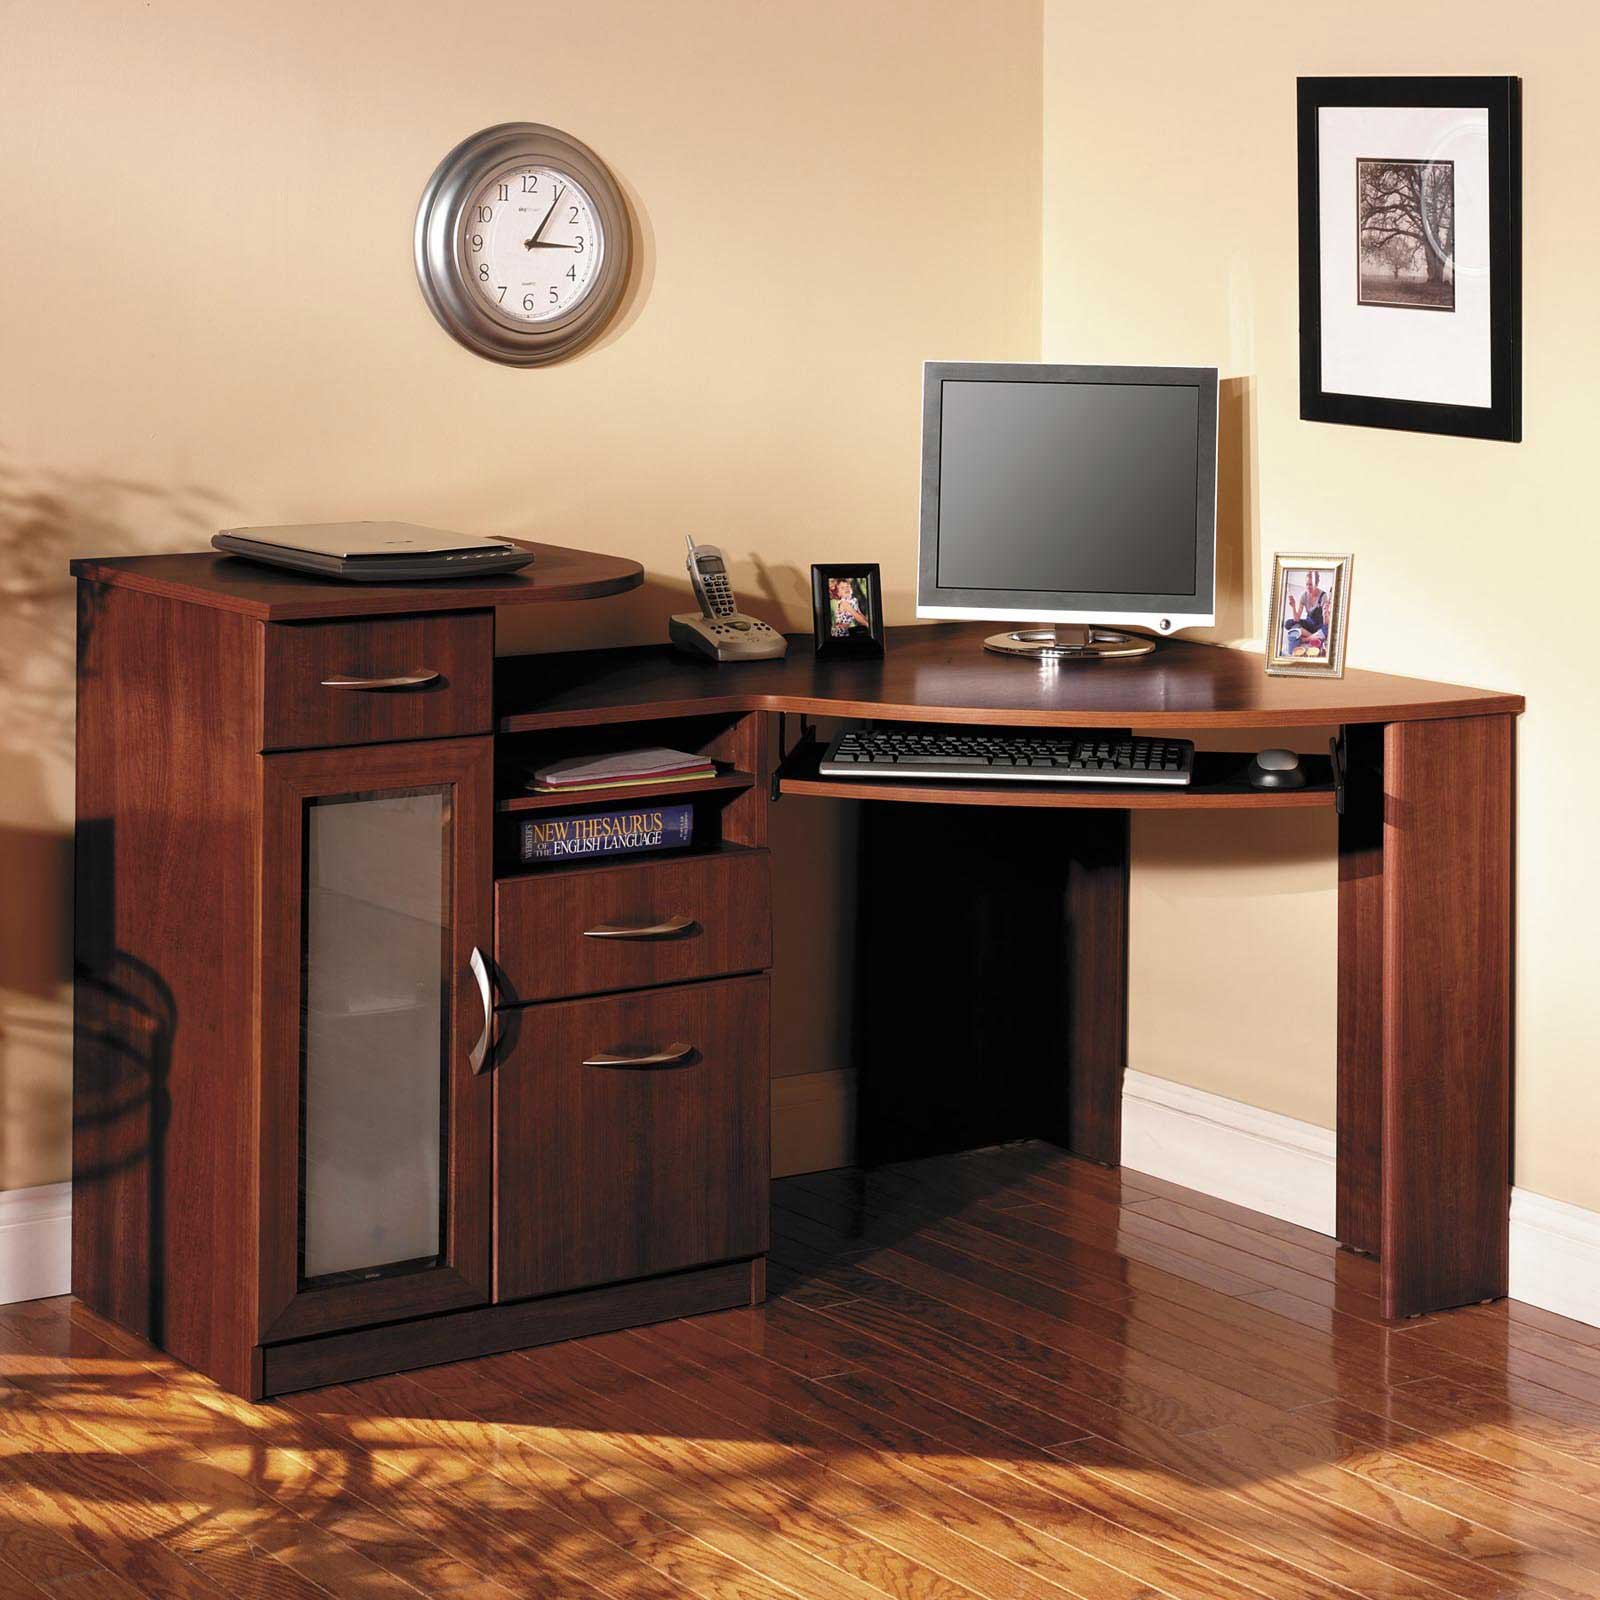 corner computer armoire | Office Furniture